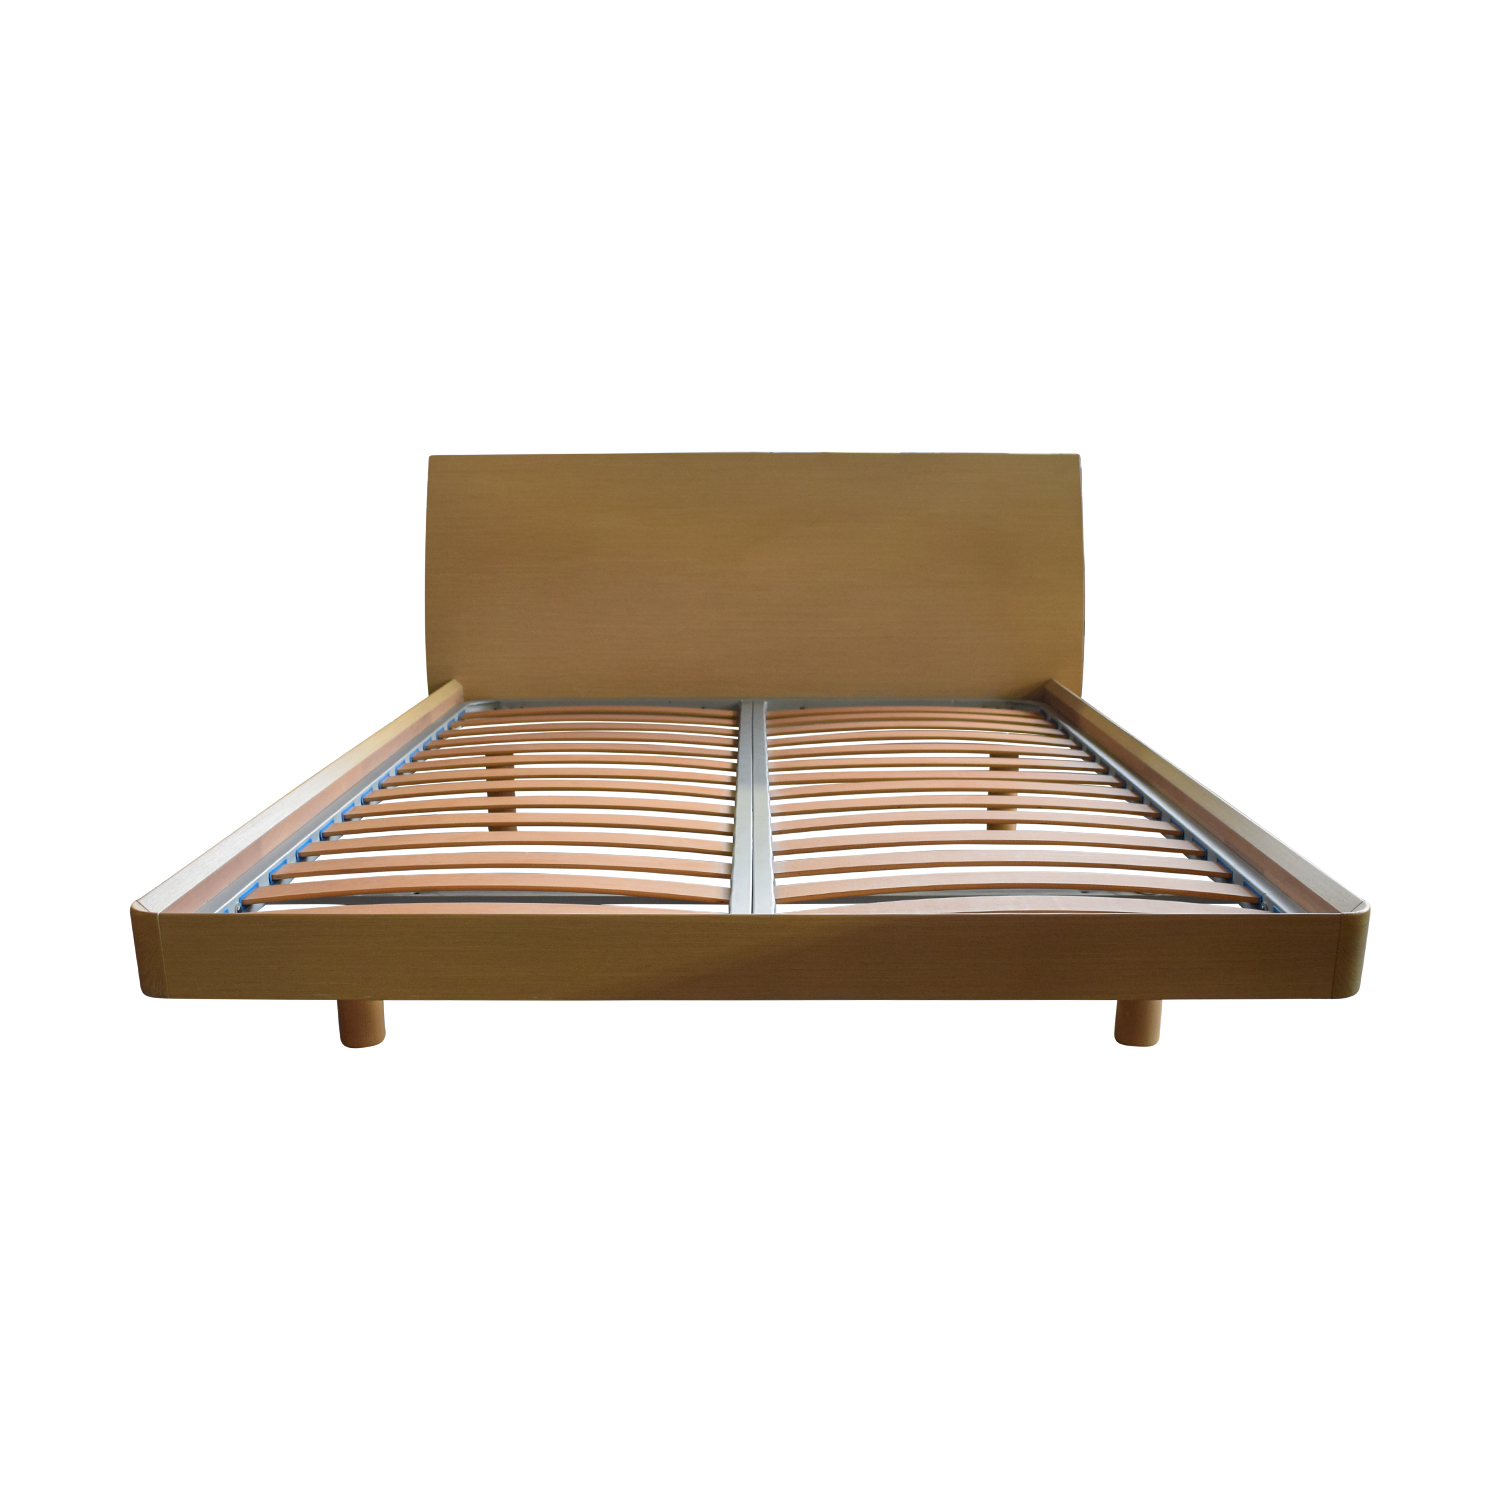 Jesse  Furniture Jesse  Furniture Wood Queen Platform Bed used